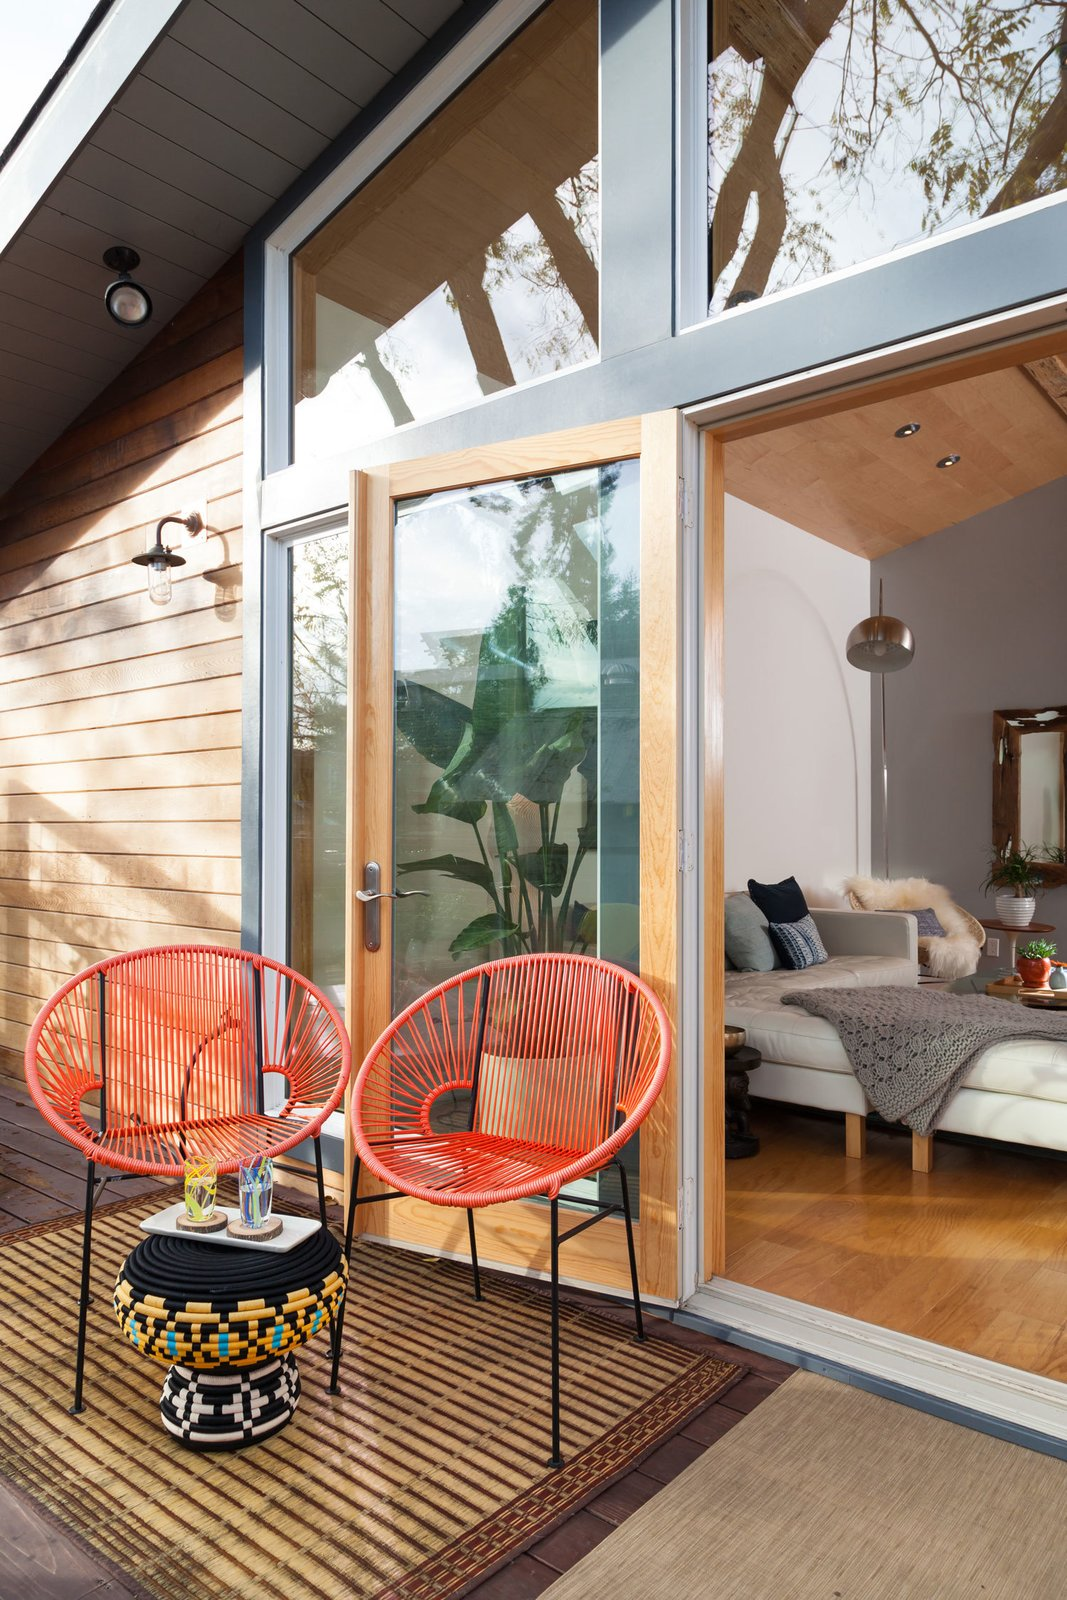 #seatingdesign #seating #chairs #outdoor #exterior #outside #bungalow #indoor-outdoor #Berkeley #California   100+ Best Modern Seating Designs